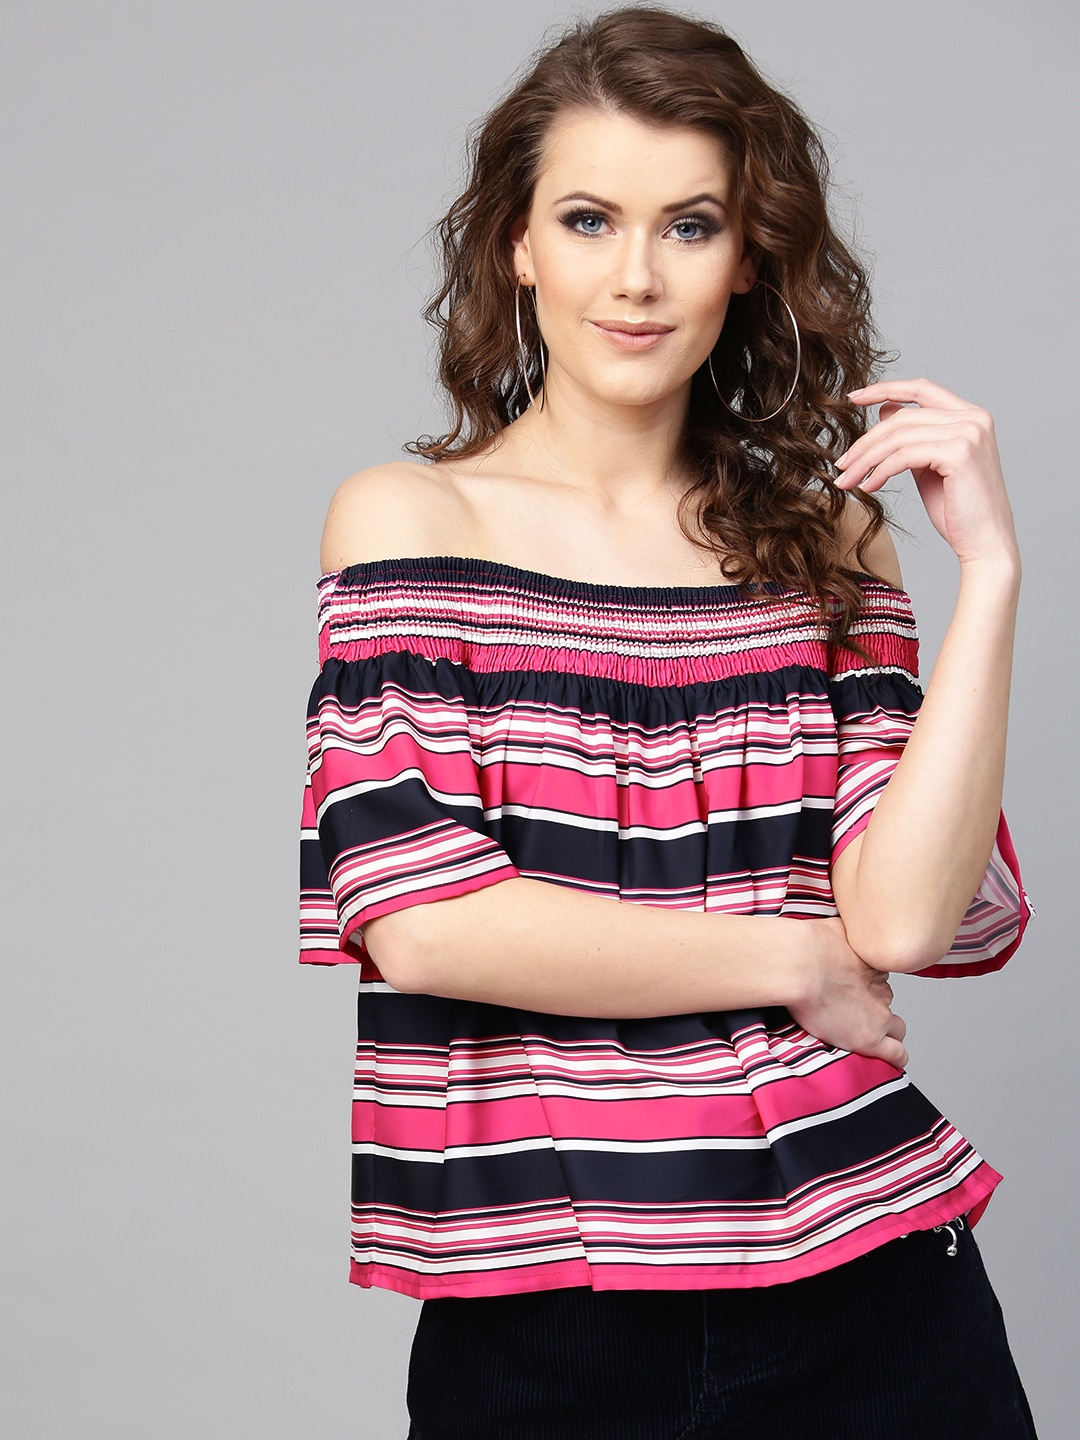 824aef90d5d0 Off Shoulder Tops - Buy Off Shoulder Tops Online in India